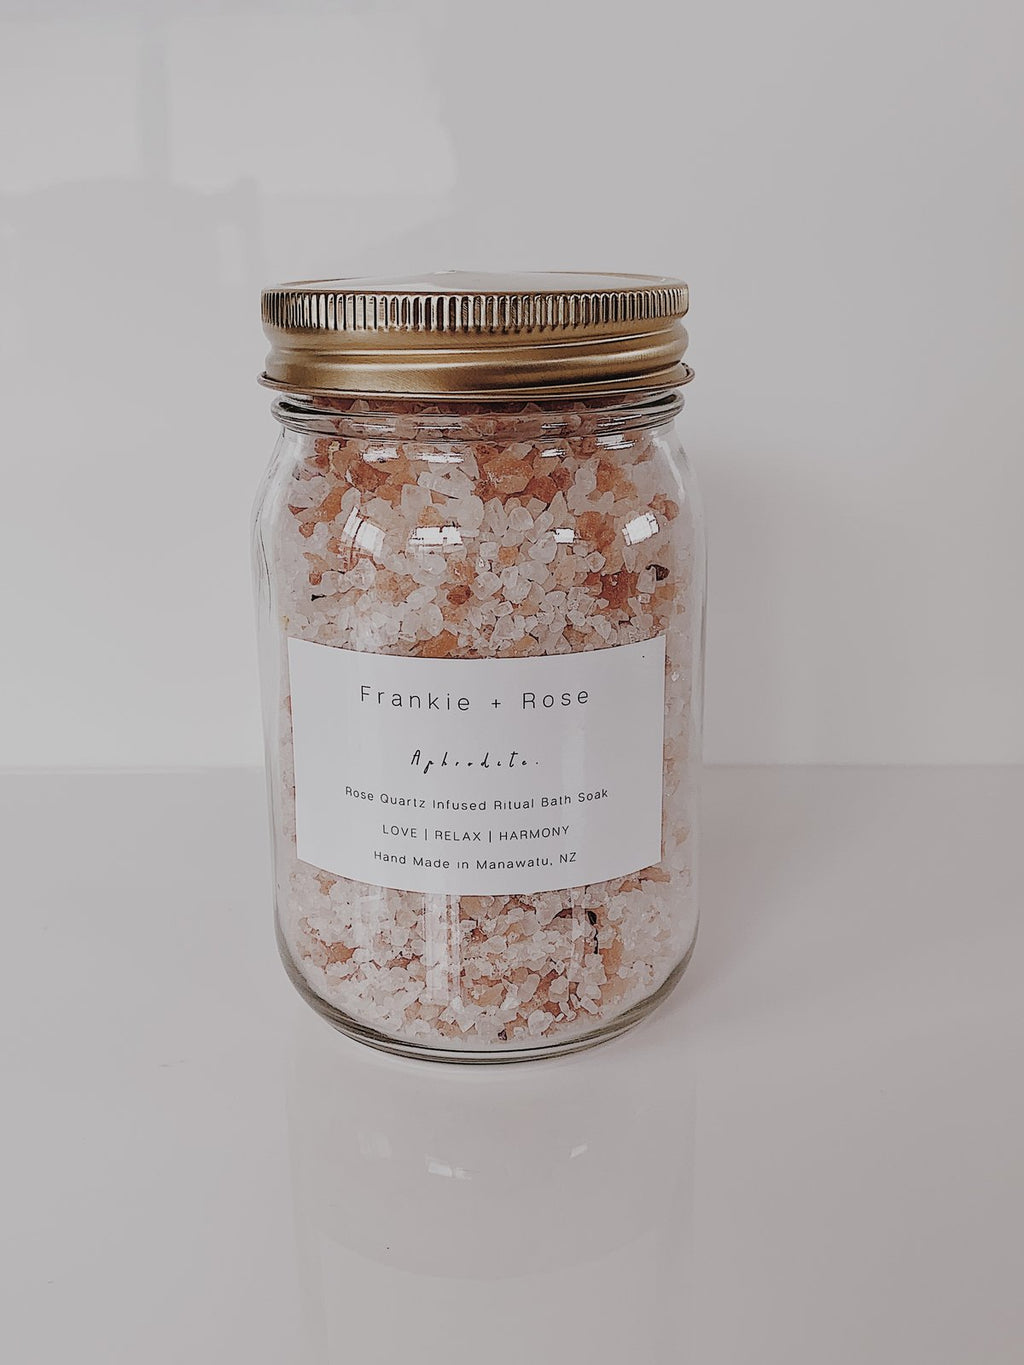 Frankie + Rose - Aphrodite Rose Quartz Infused Bath Soak